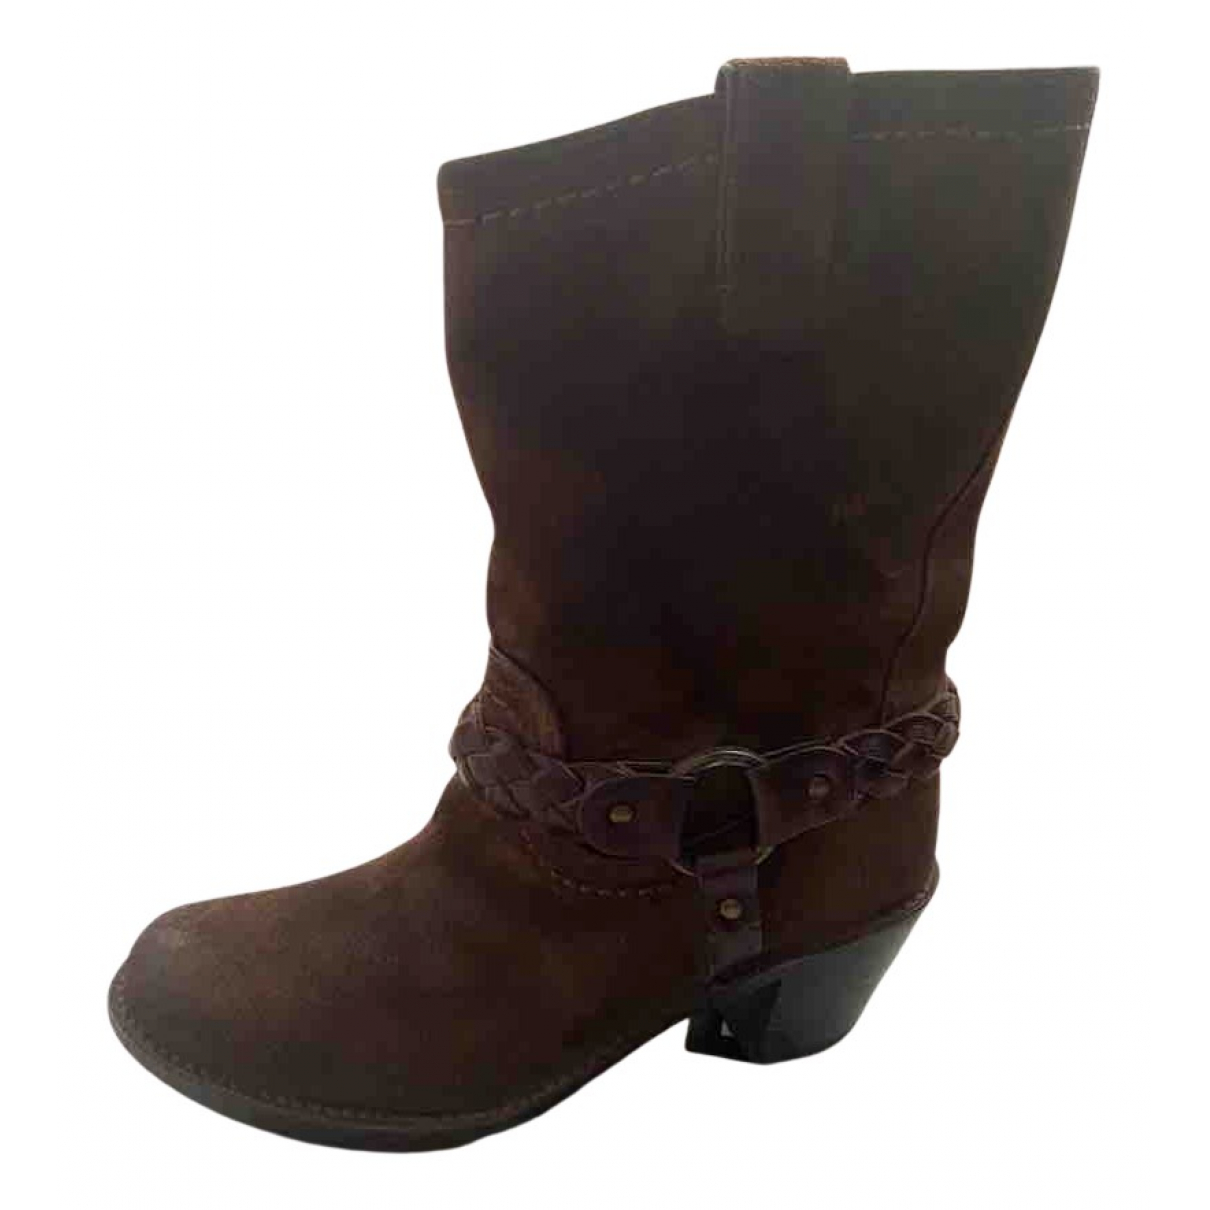 Frye N Brown Leather Boots for Women 39 EU